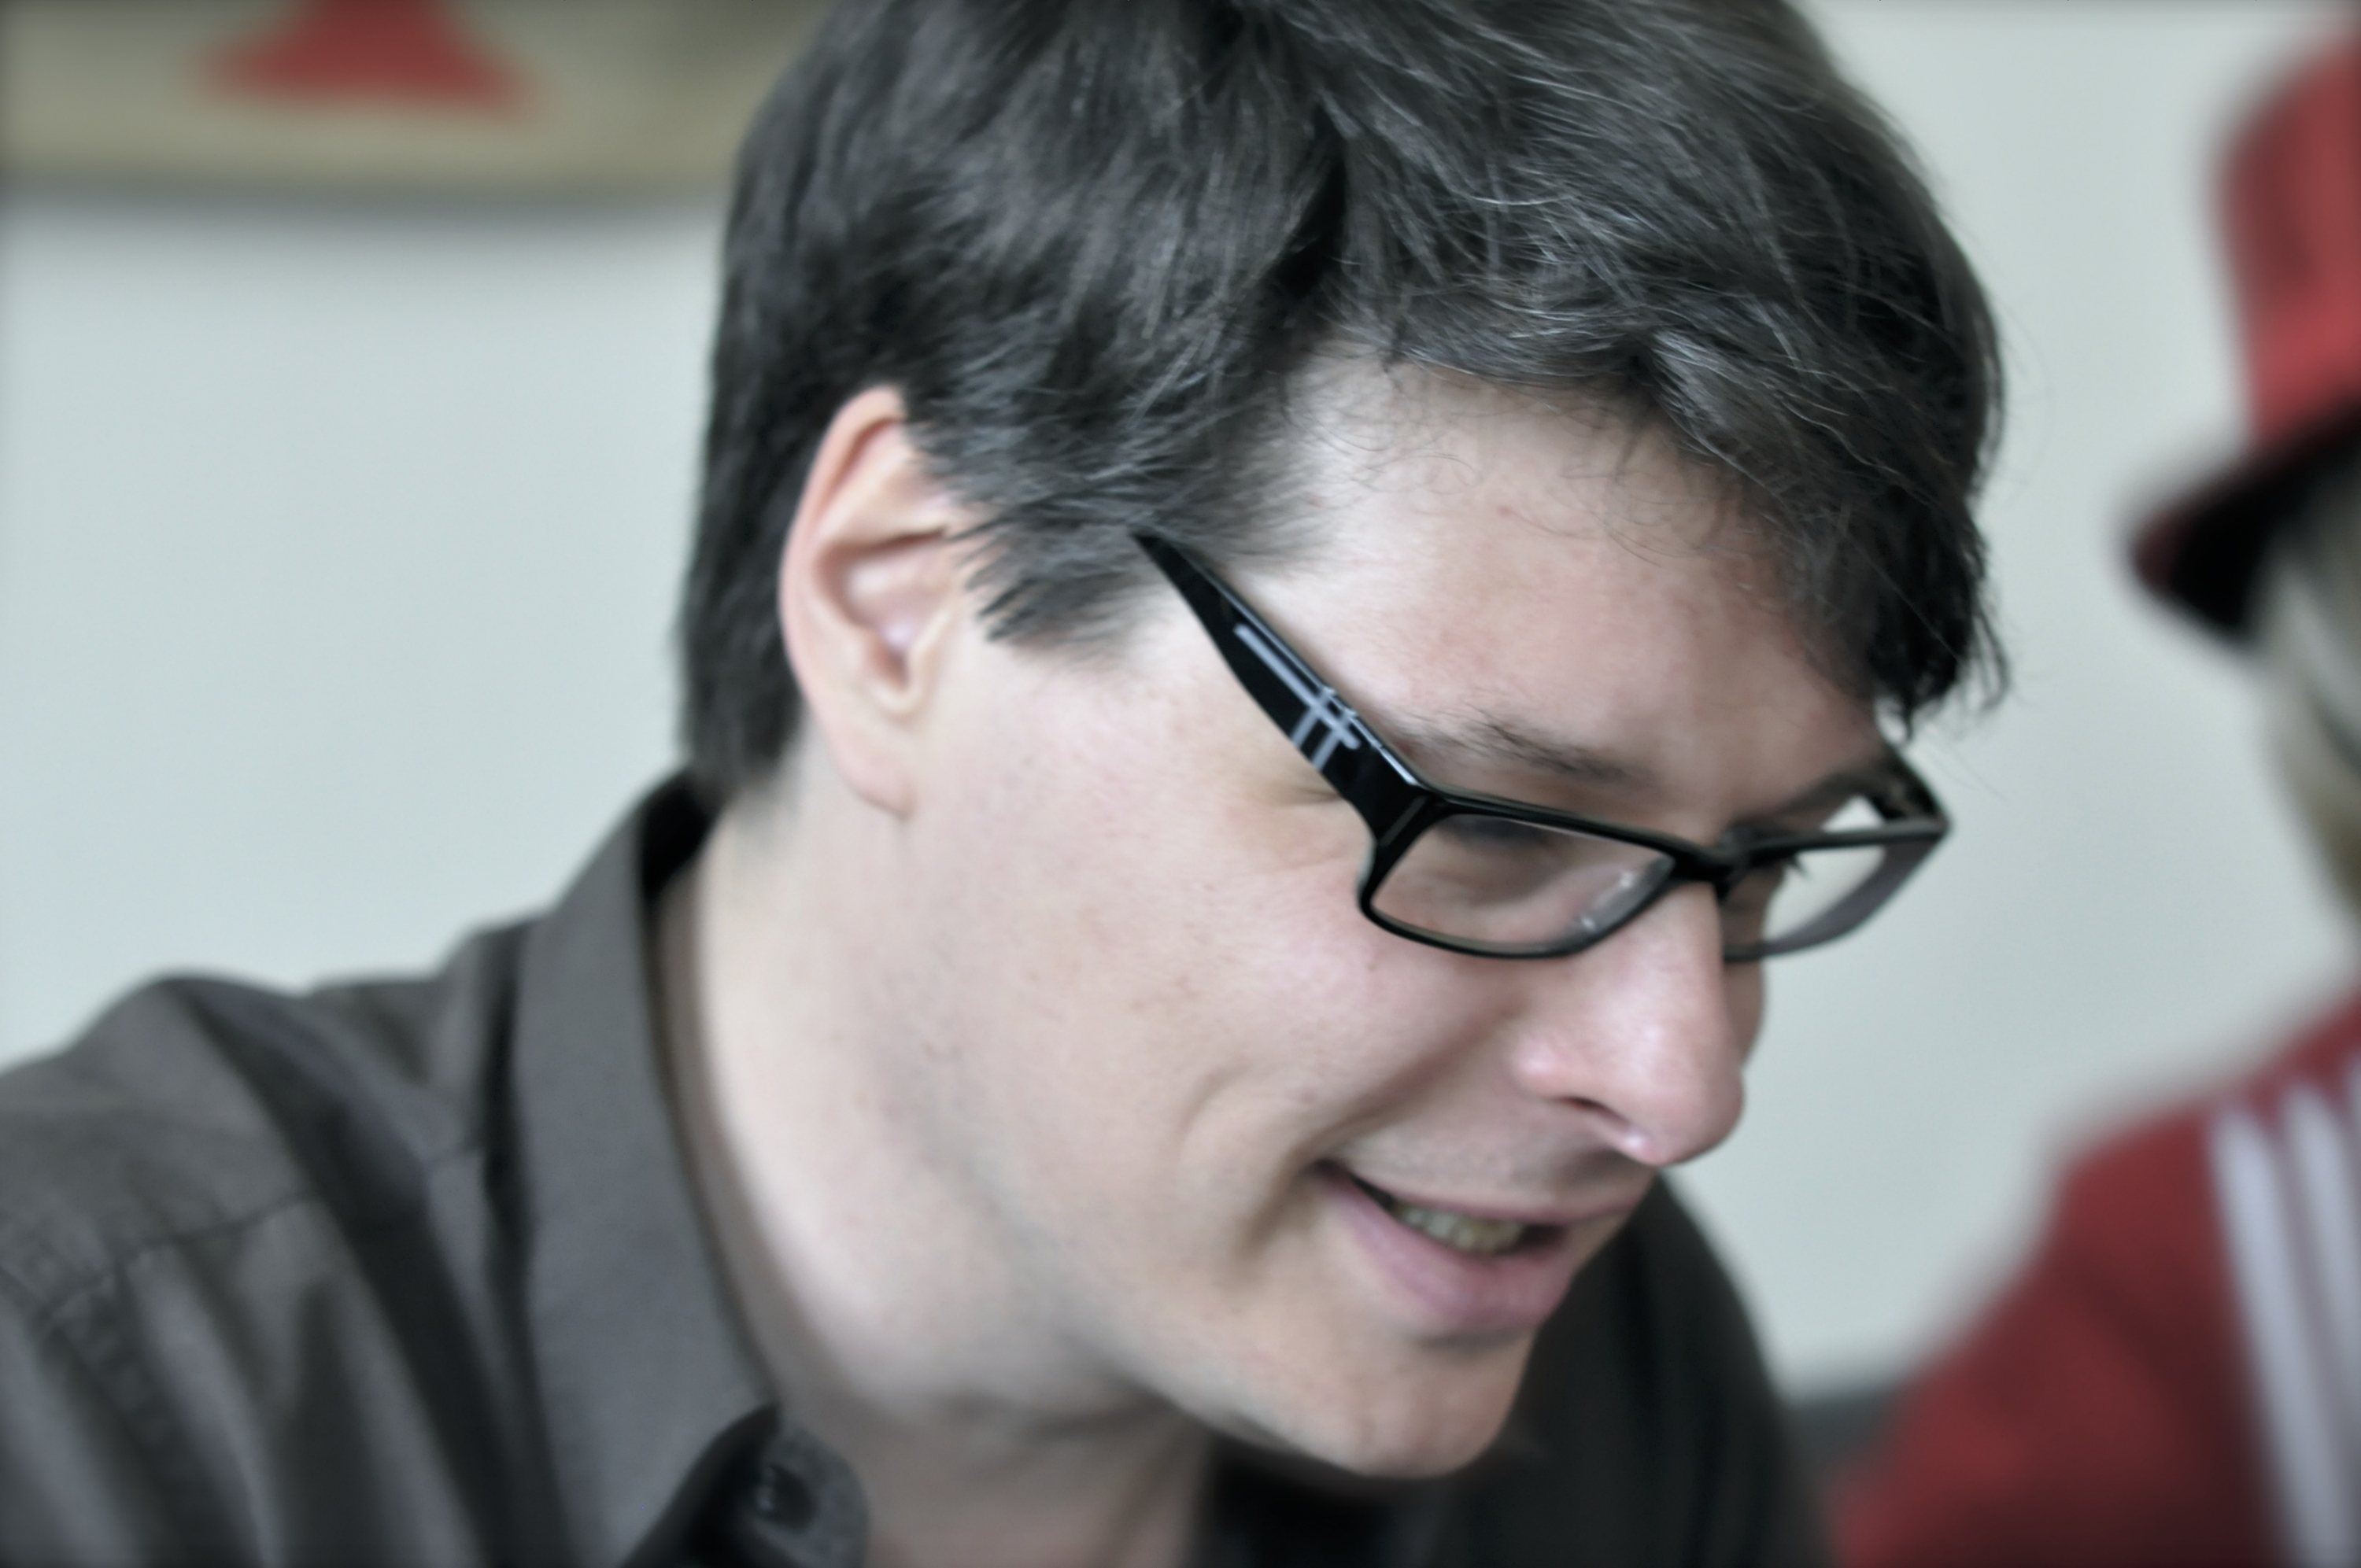 Head shot, side profile, of author Marc Degens. Copyright Frank Maleu